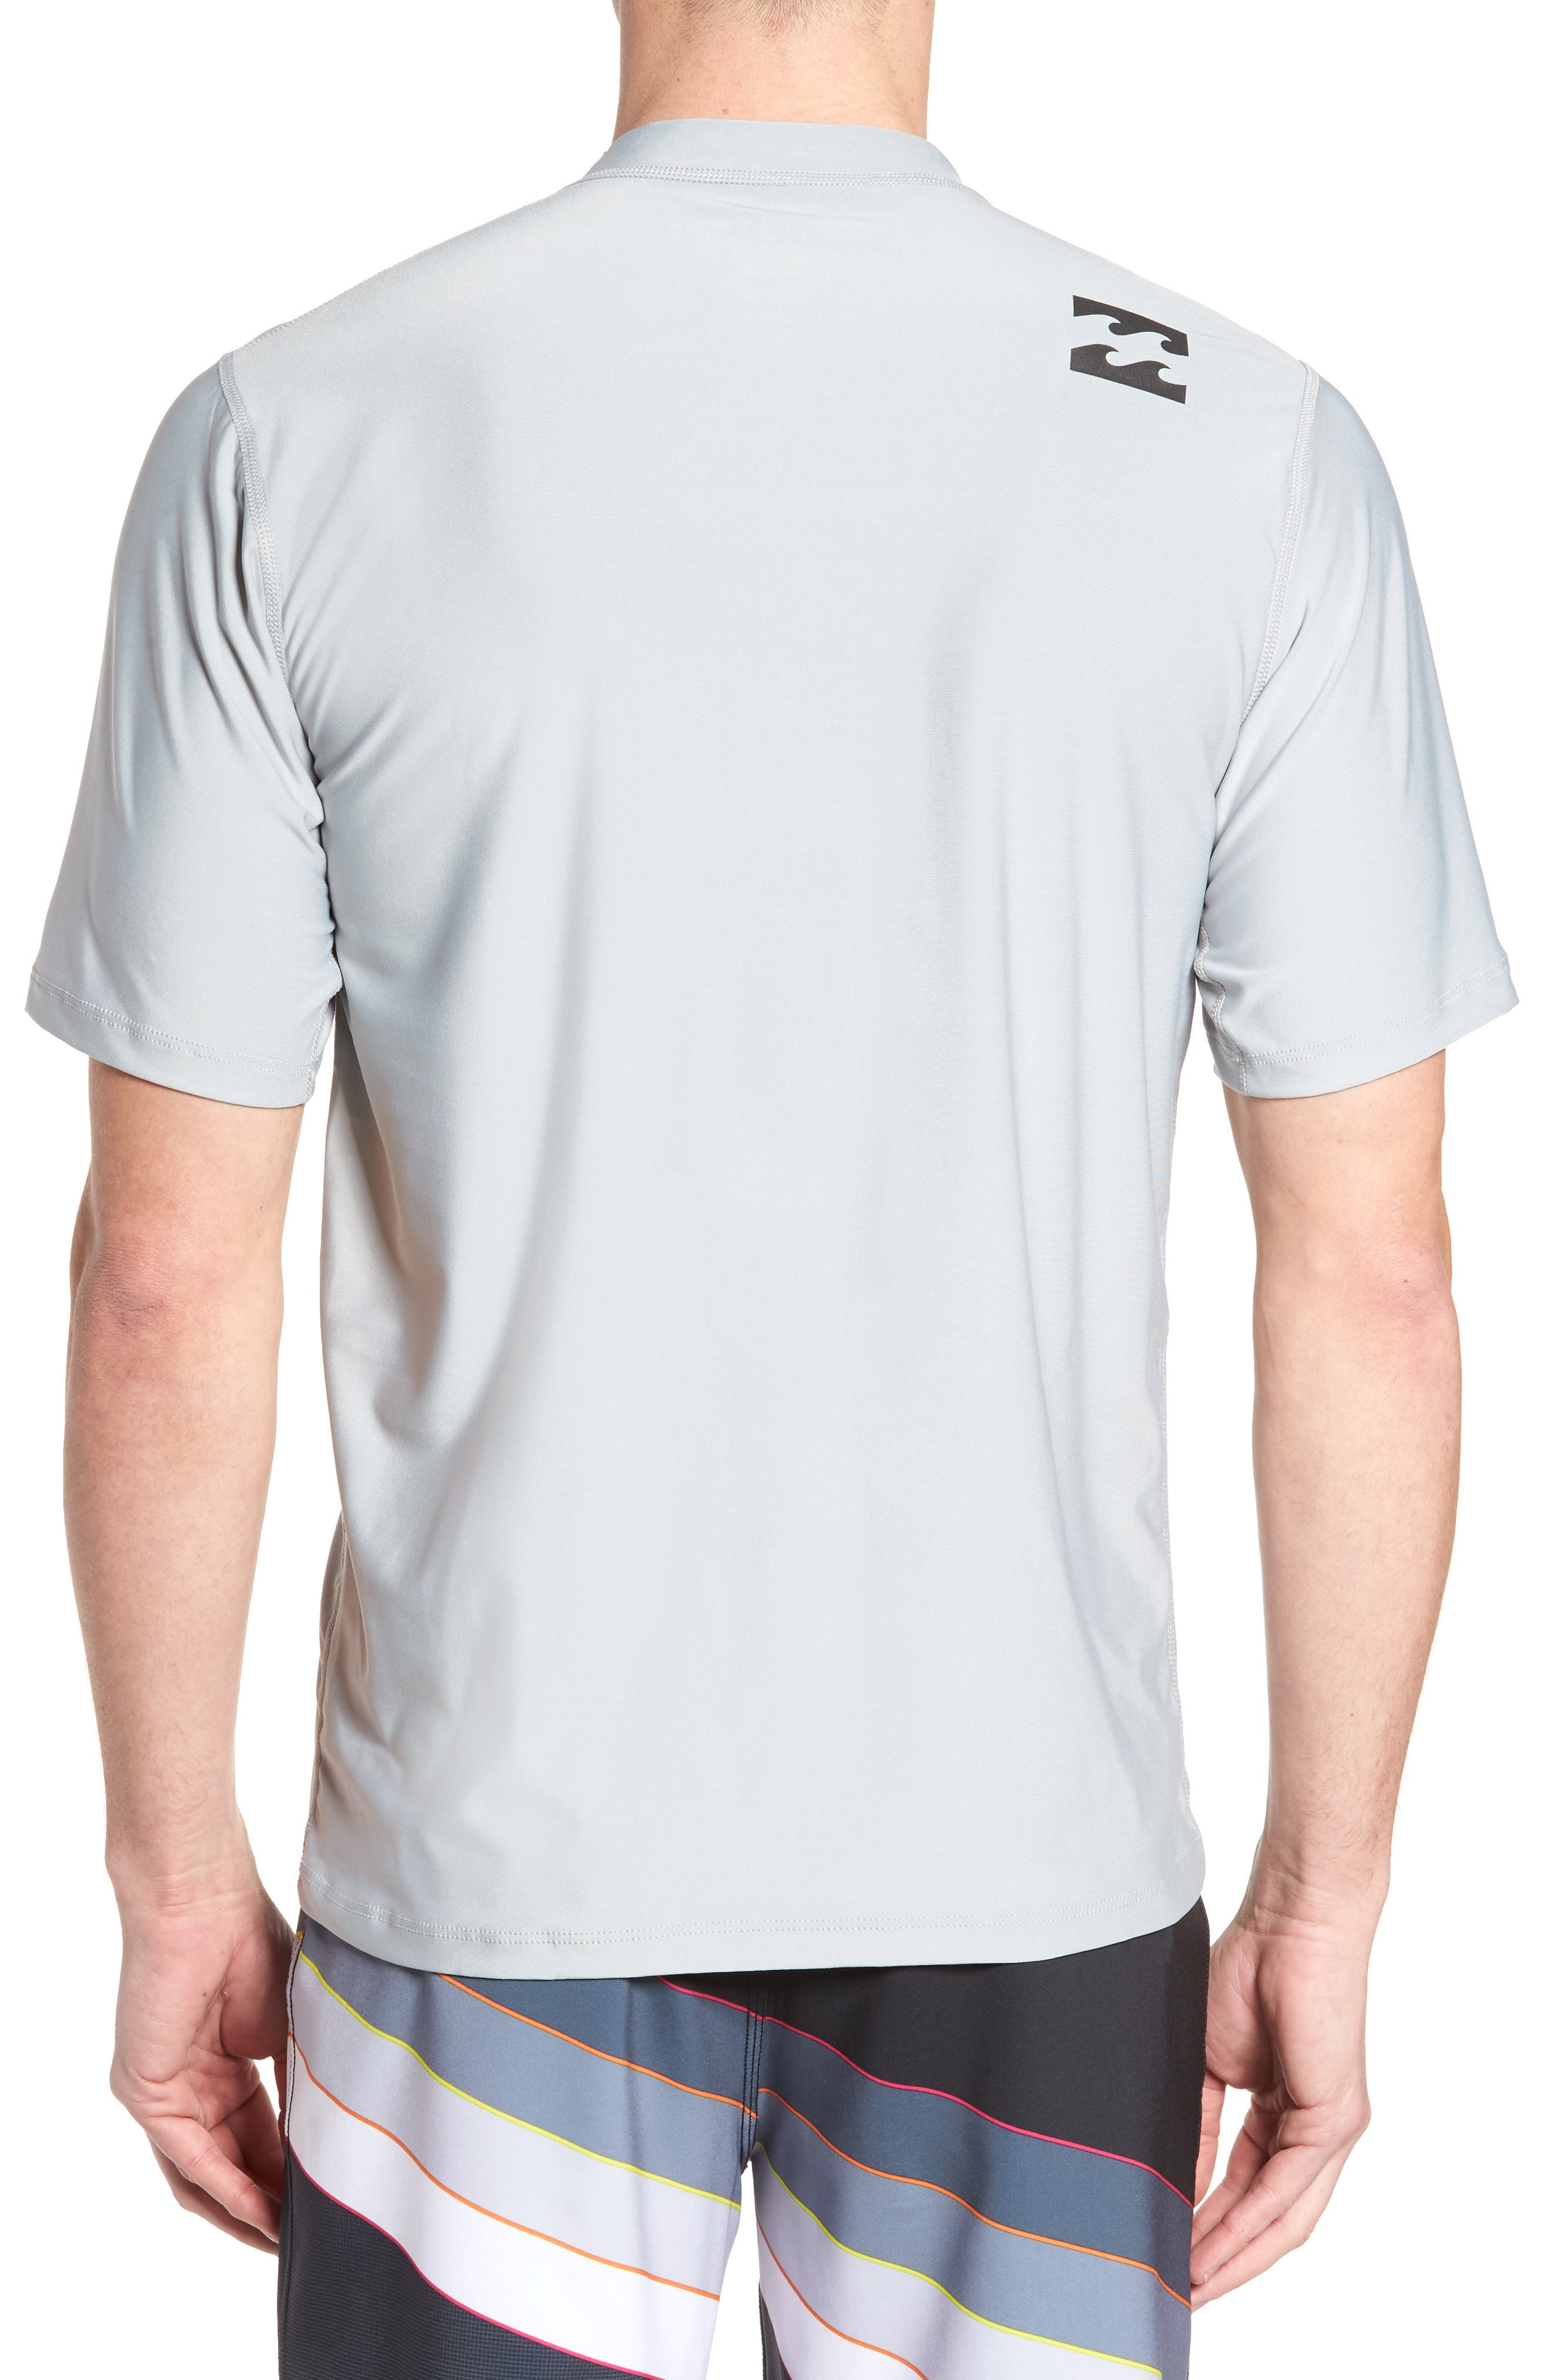 All Day Wave Wet Shirt,                             Alternate thumbnail 2, color,                             Silver